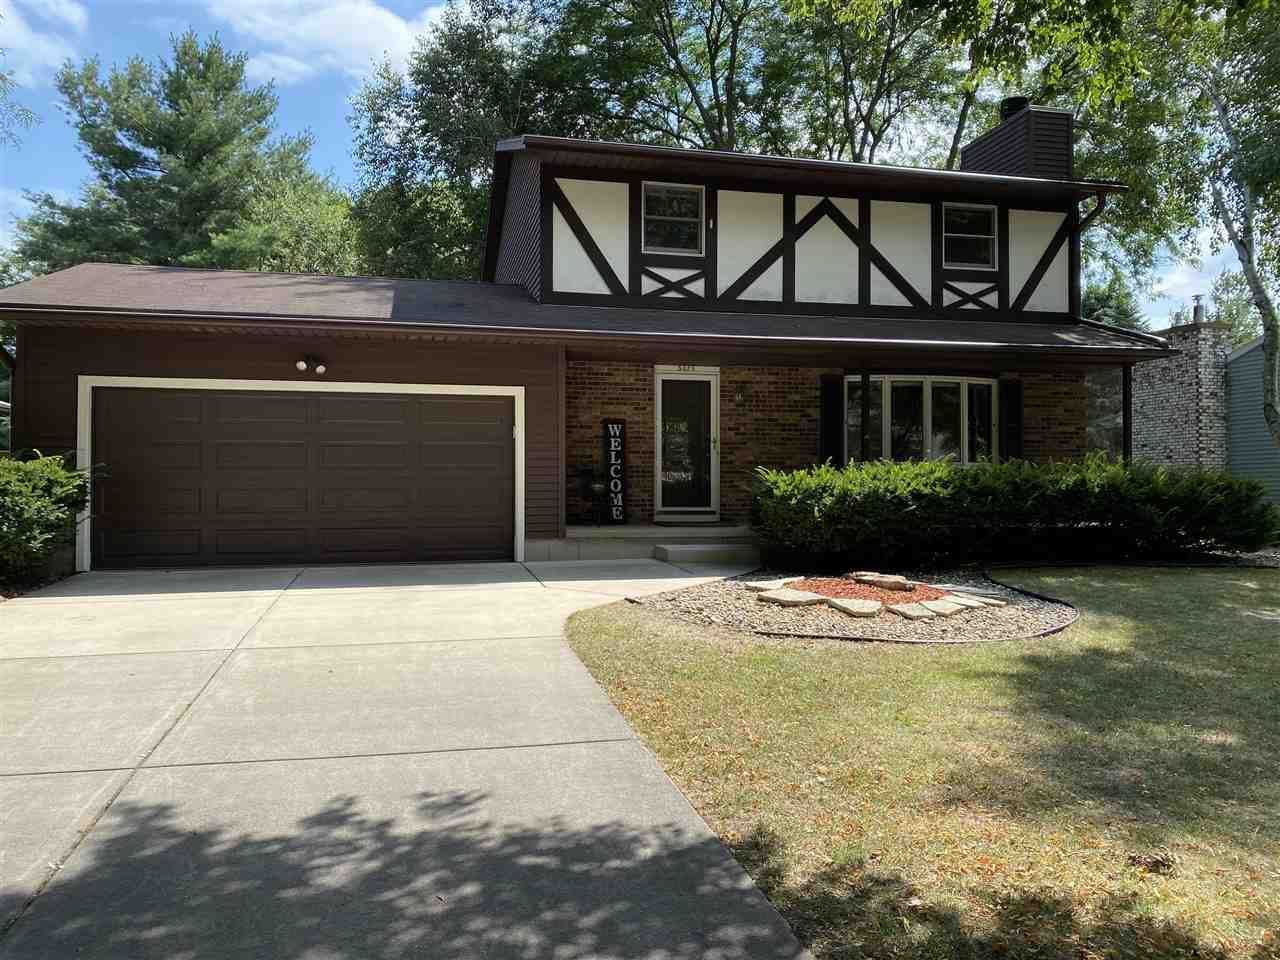 5029 Stonehaven Dr, Madison, WI 53716 - #: 1890513